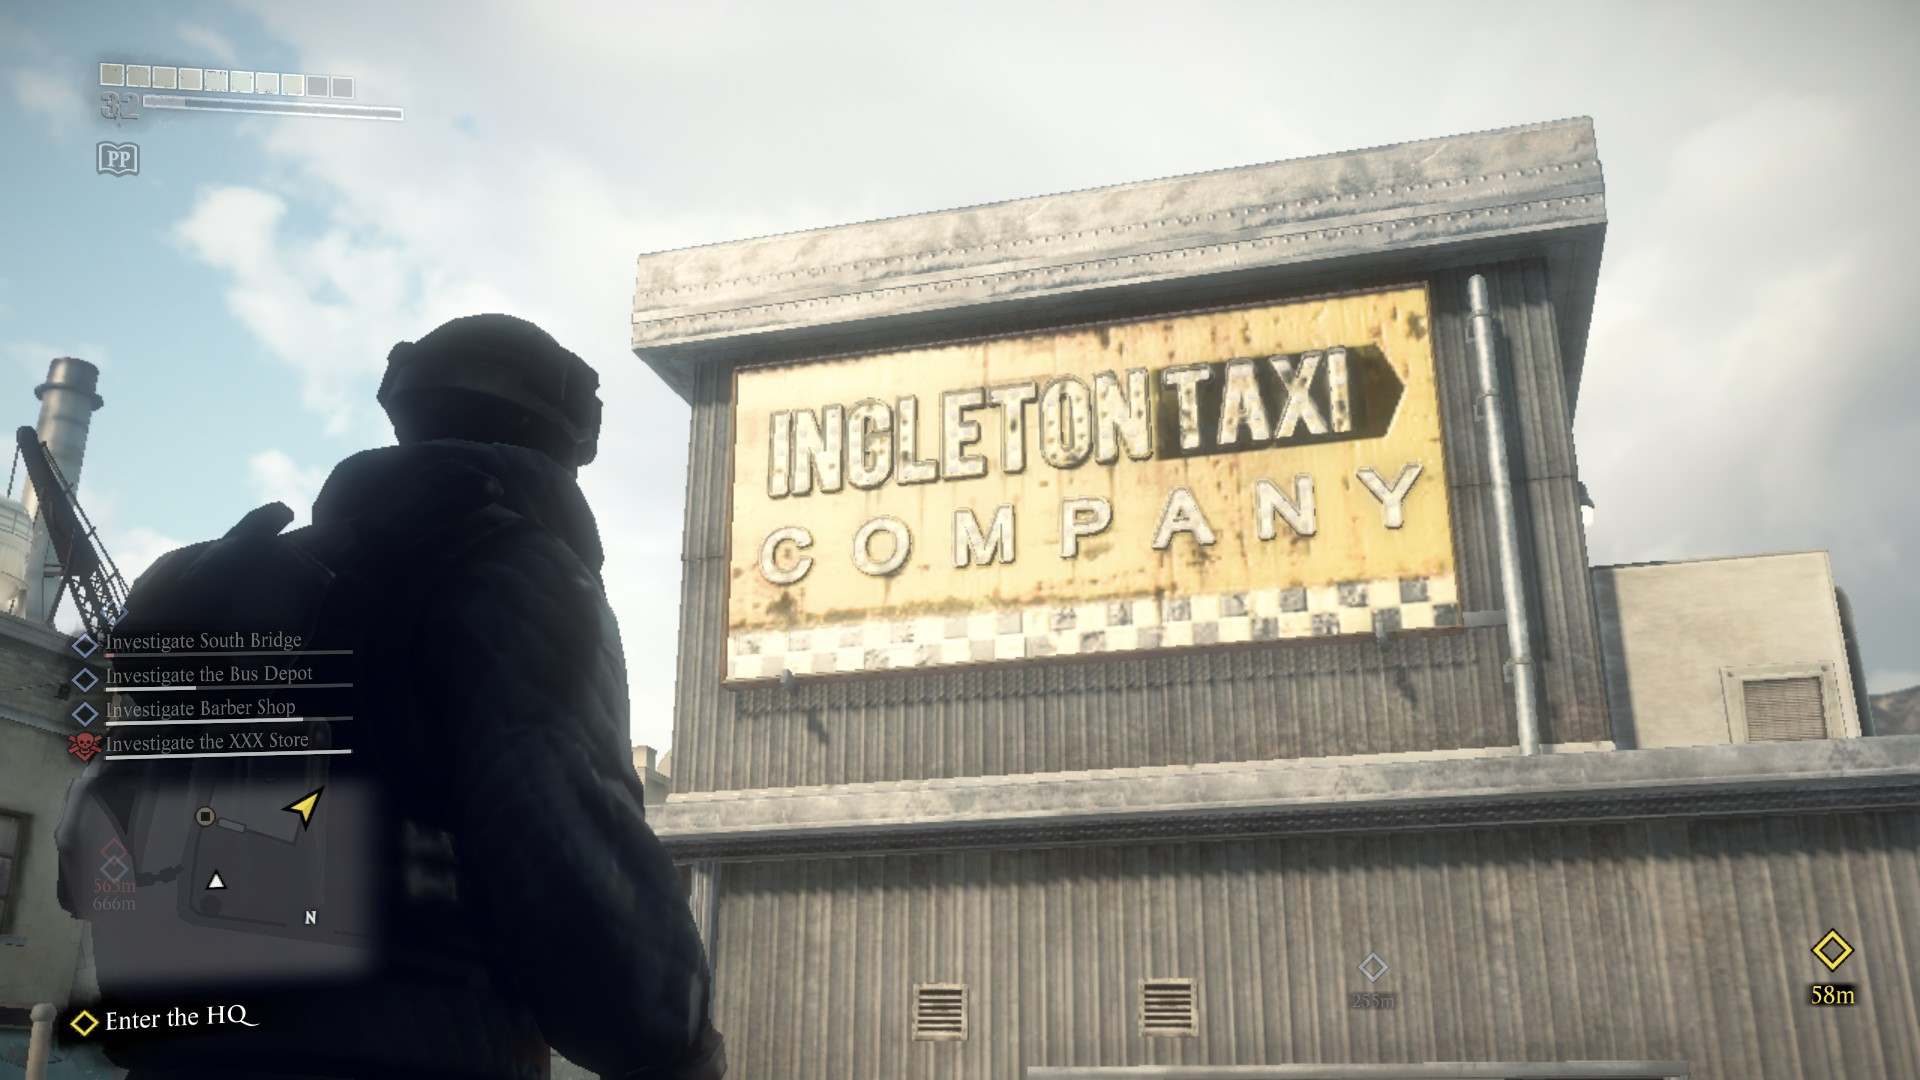 Ingleton taxi company dead rising wiki fandom powered by wikia ingleton taxi company malvernweather Image collections